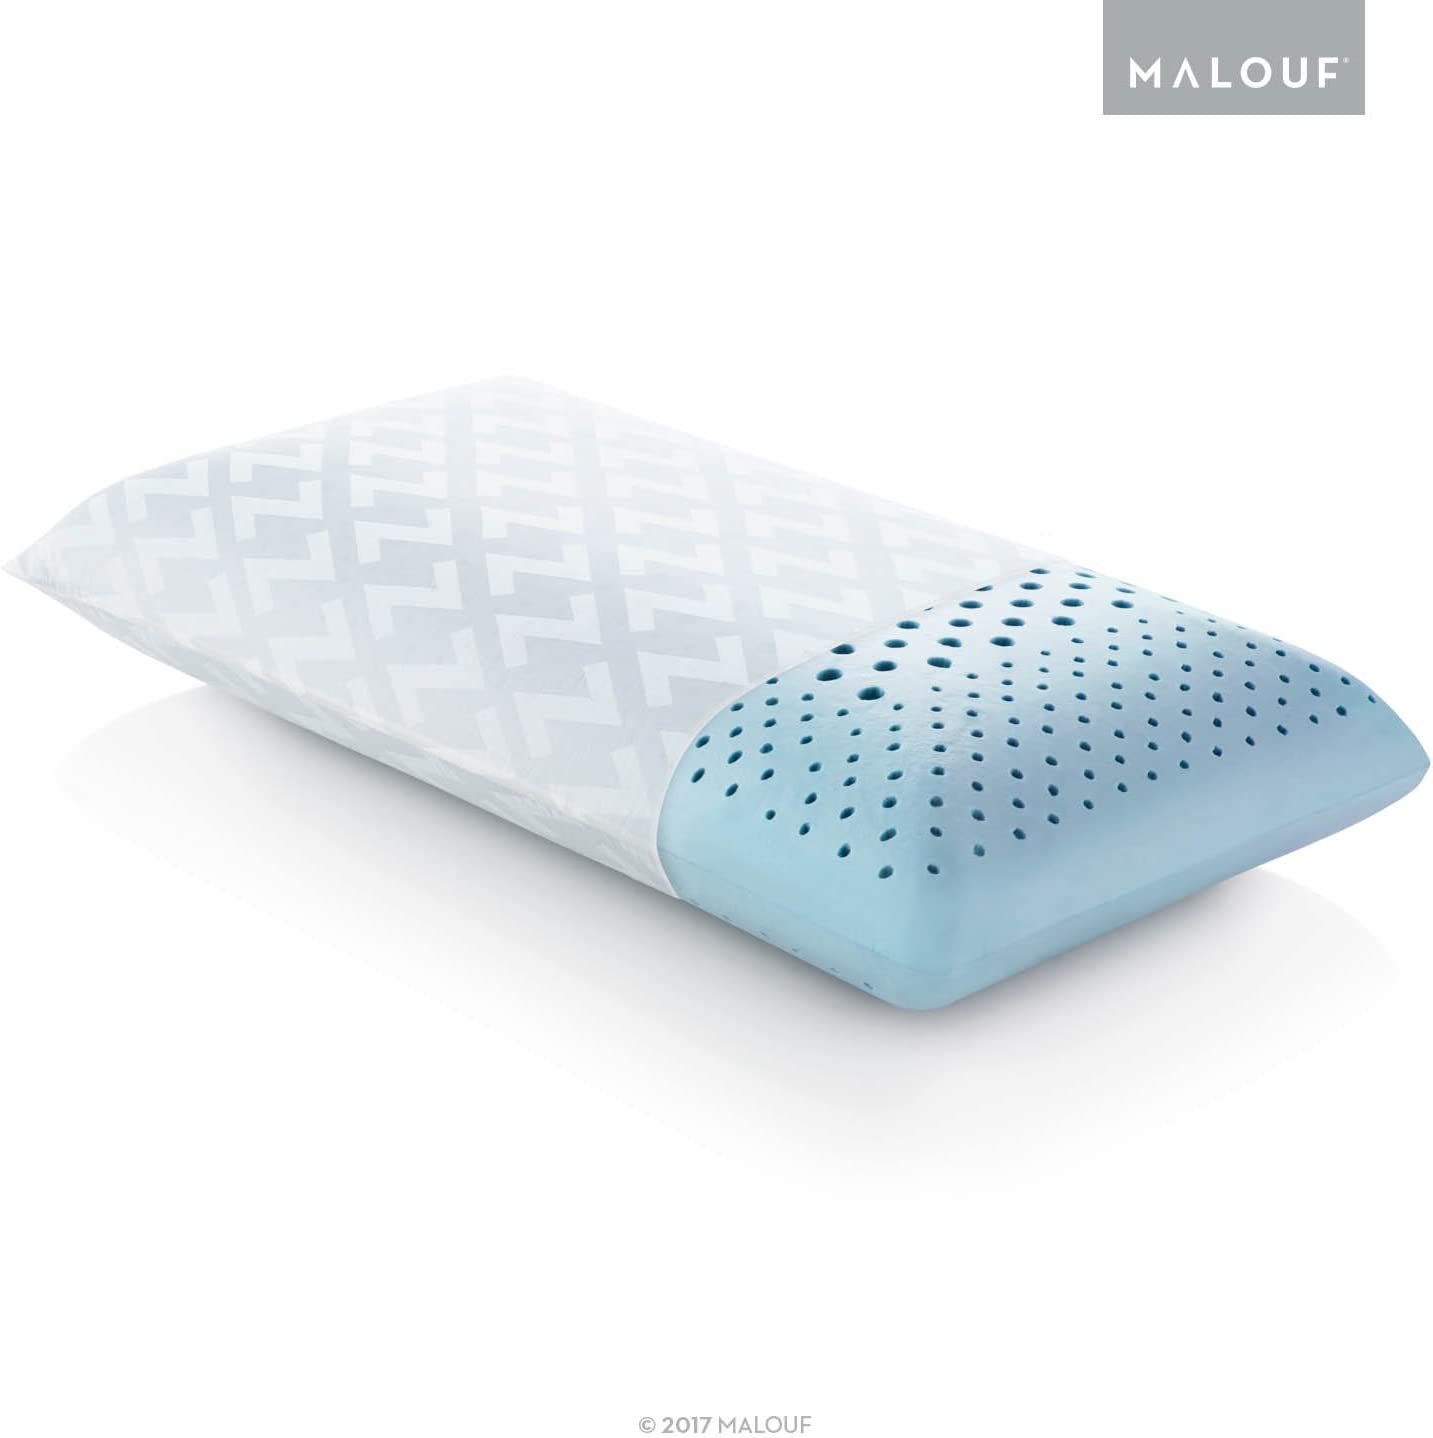 Z ZONED GEL DOUGH Gel-Infused Memory Foam Bed Pillow - 5-year Warranty - King - High Loft